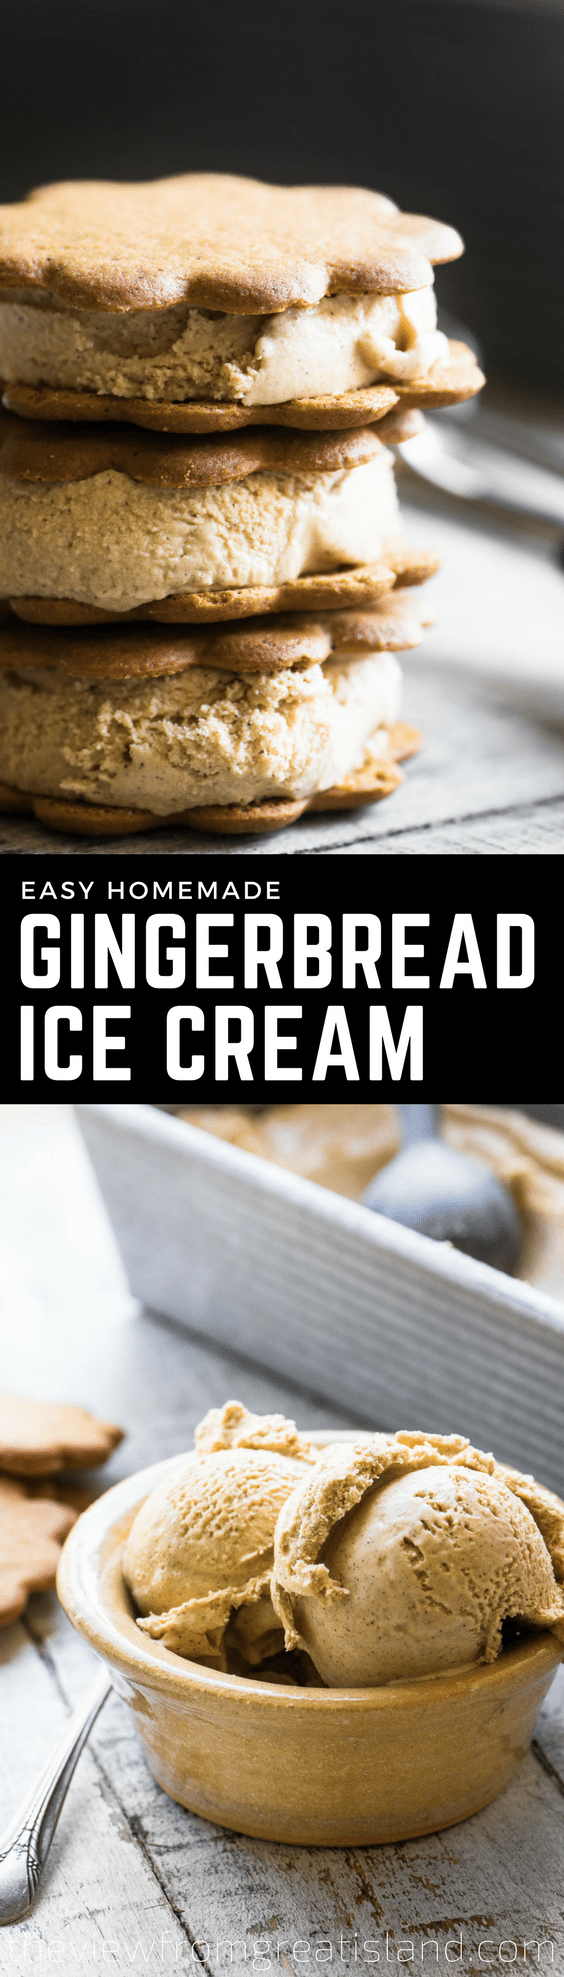 Homemade Gingerbread Ice Cream ~ my latest ice cream obsession is bursting with the warm spicy flavor of the best gingerbread! #icecream #dessert #gingerbread #holiday #christmas #fall Christmasdessert #Thanksgivingdessert #holidaydessert #homemadeicecream #easyicecream #icecreamrecipe #noeggicecream #glutenfreedessert